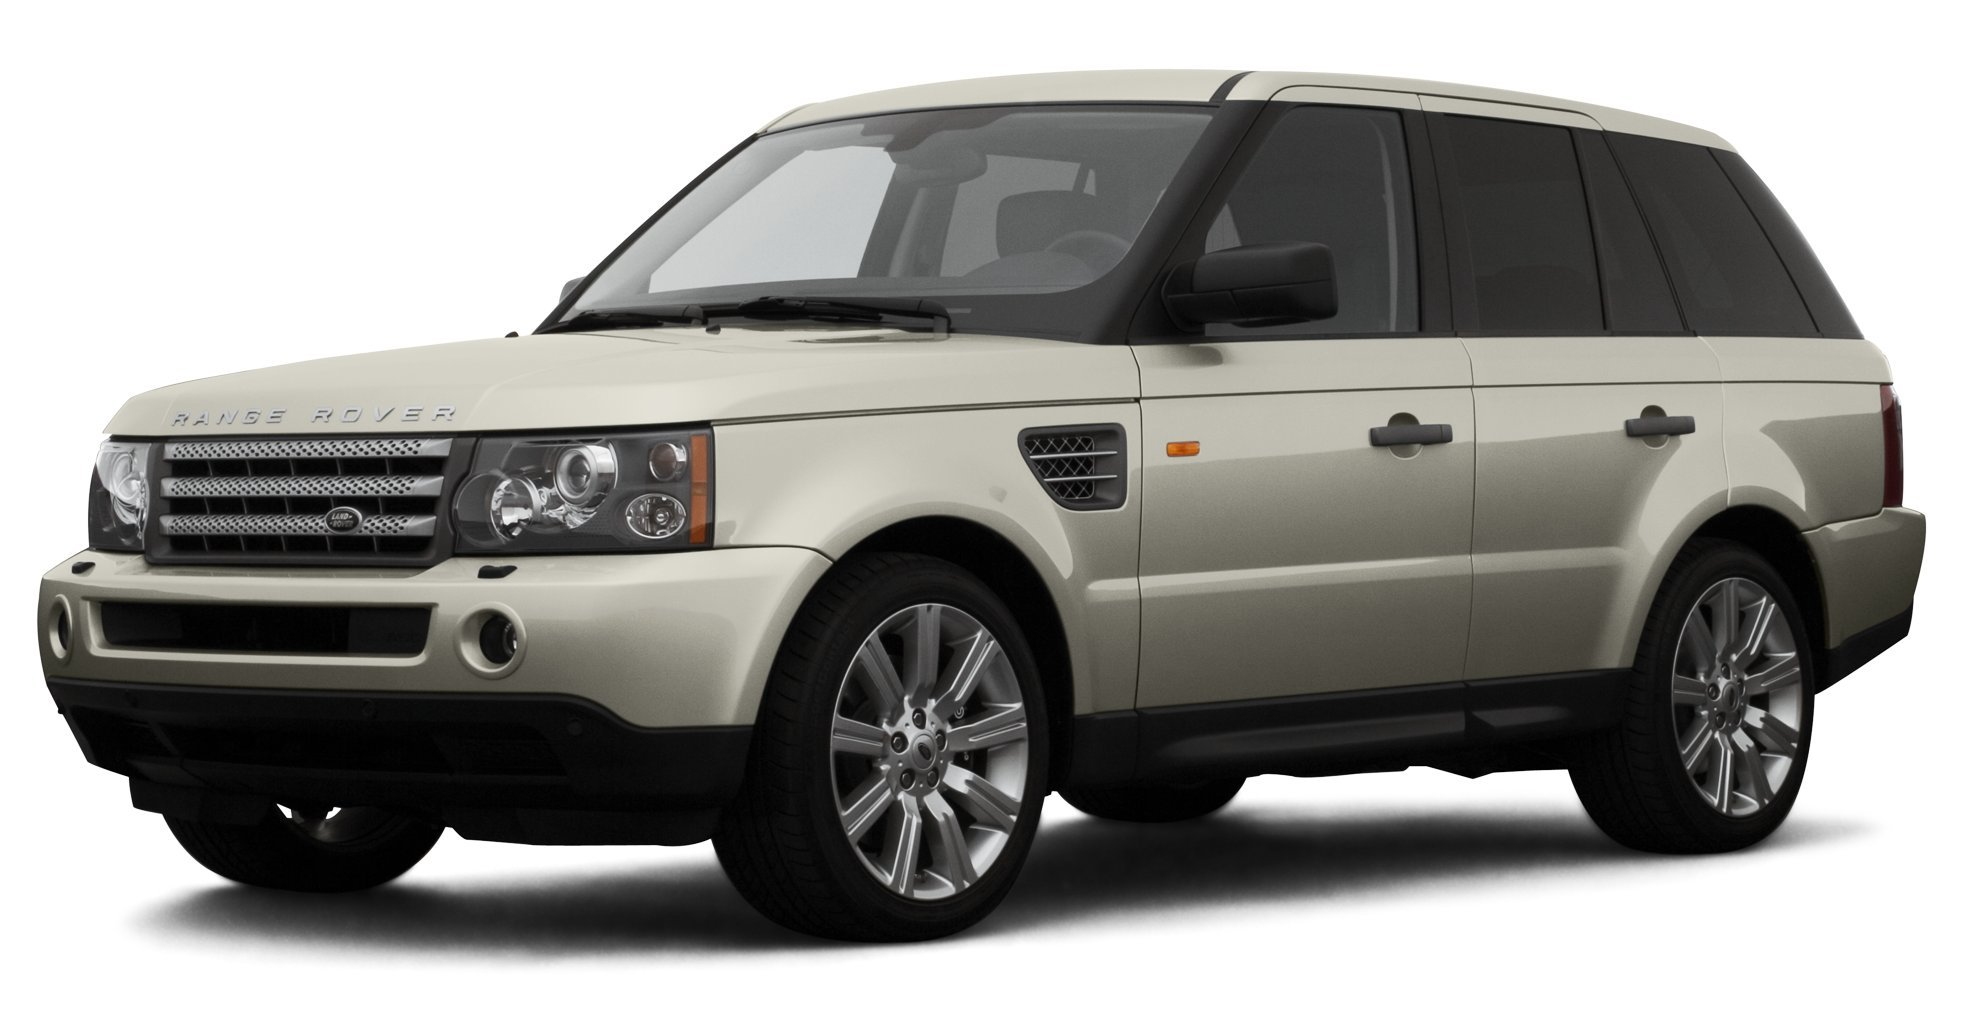 Amazon 2007 Land Rover Range Rover Reviews and Specs